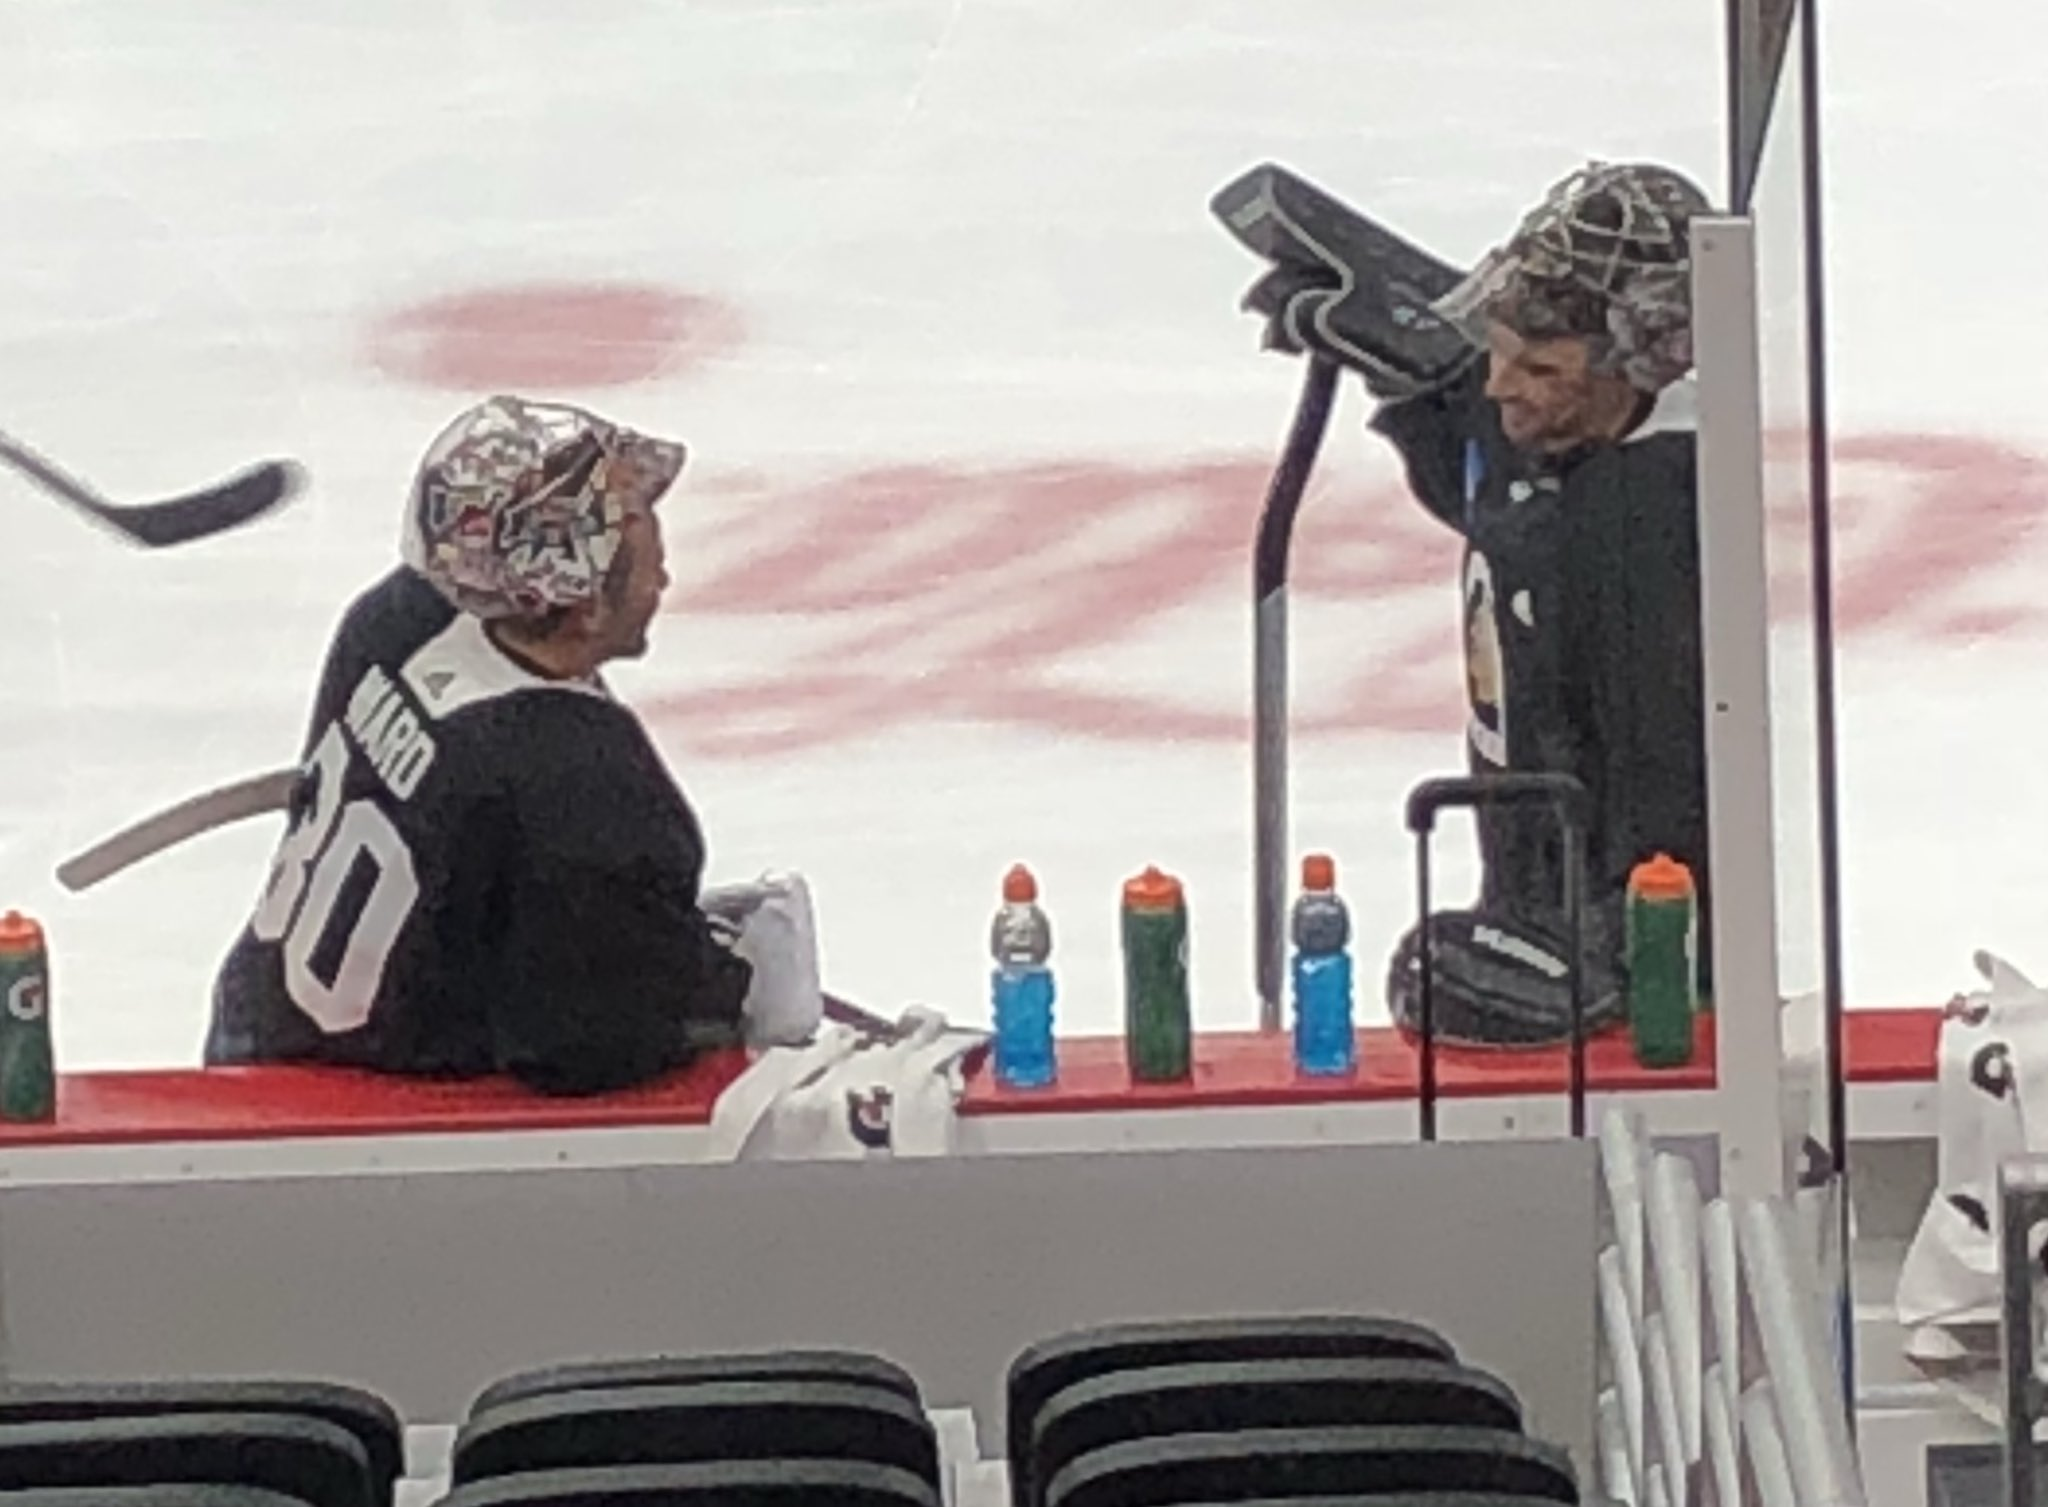 Scott Foster practicing with the Blackhawks this morning   hawks 185343a093fa